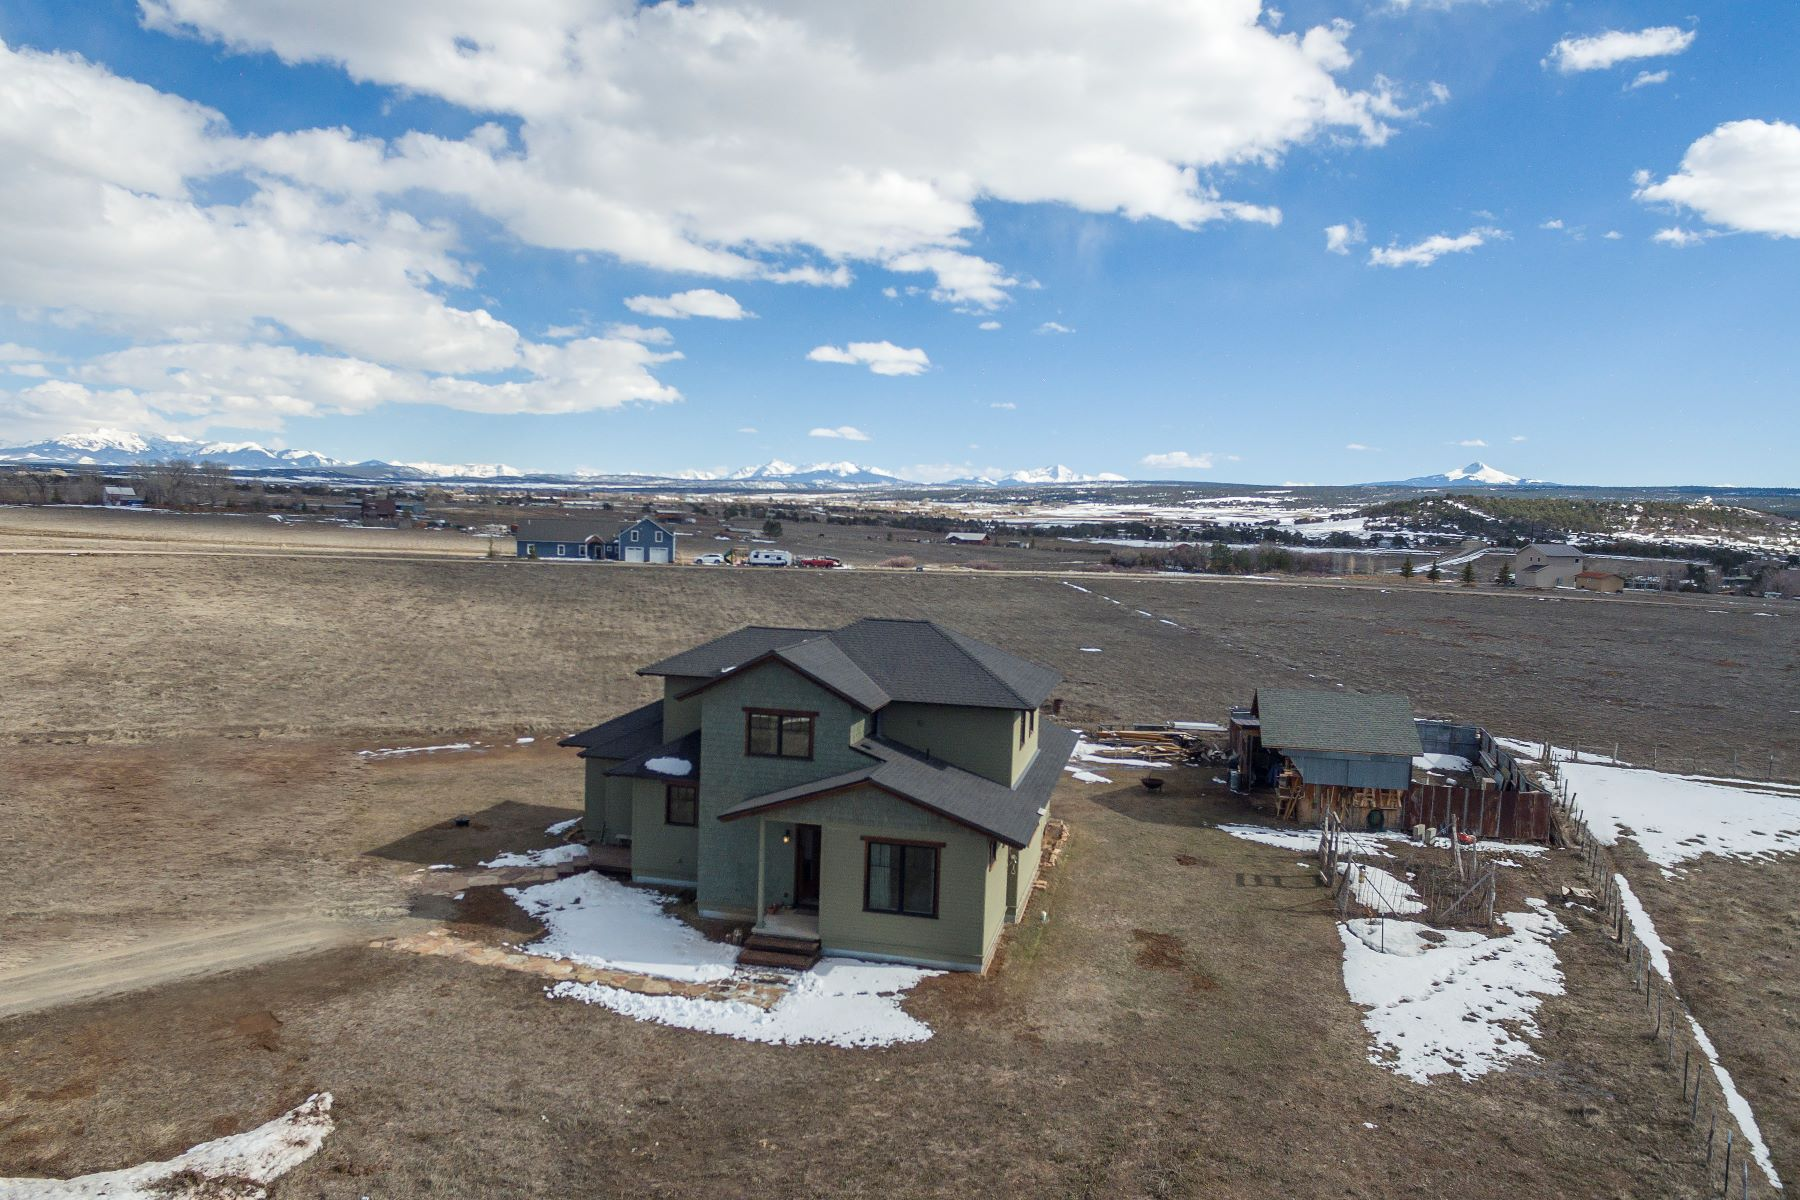 Single Family Homes for Sale at 310 40AA Road Norwood, Colorado 81423 United States